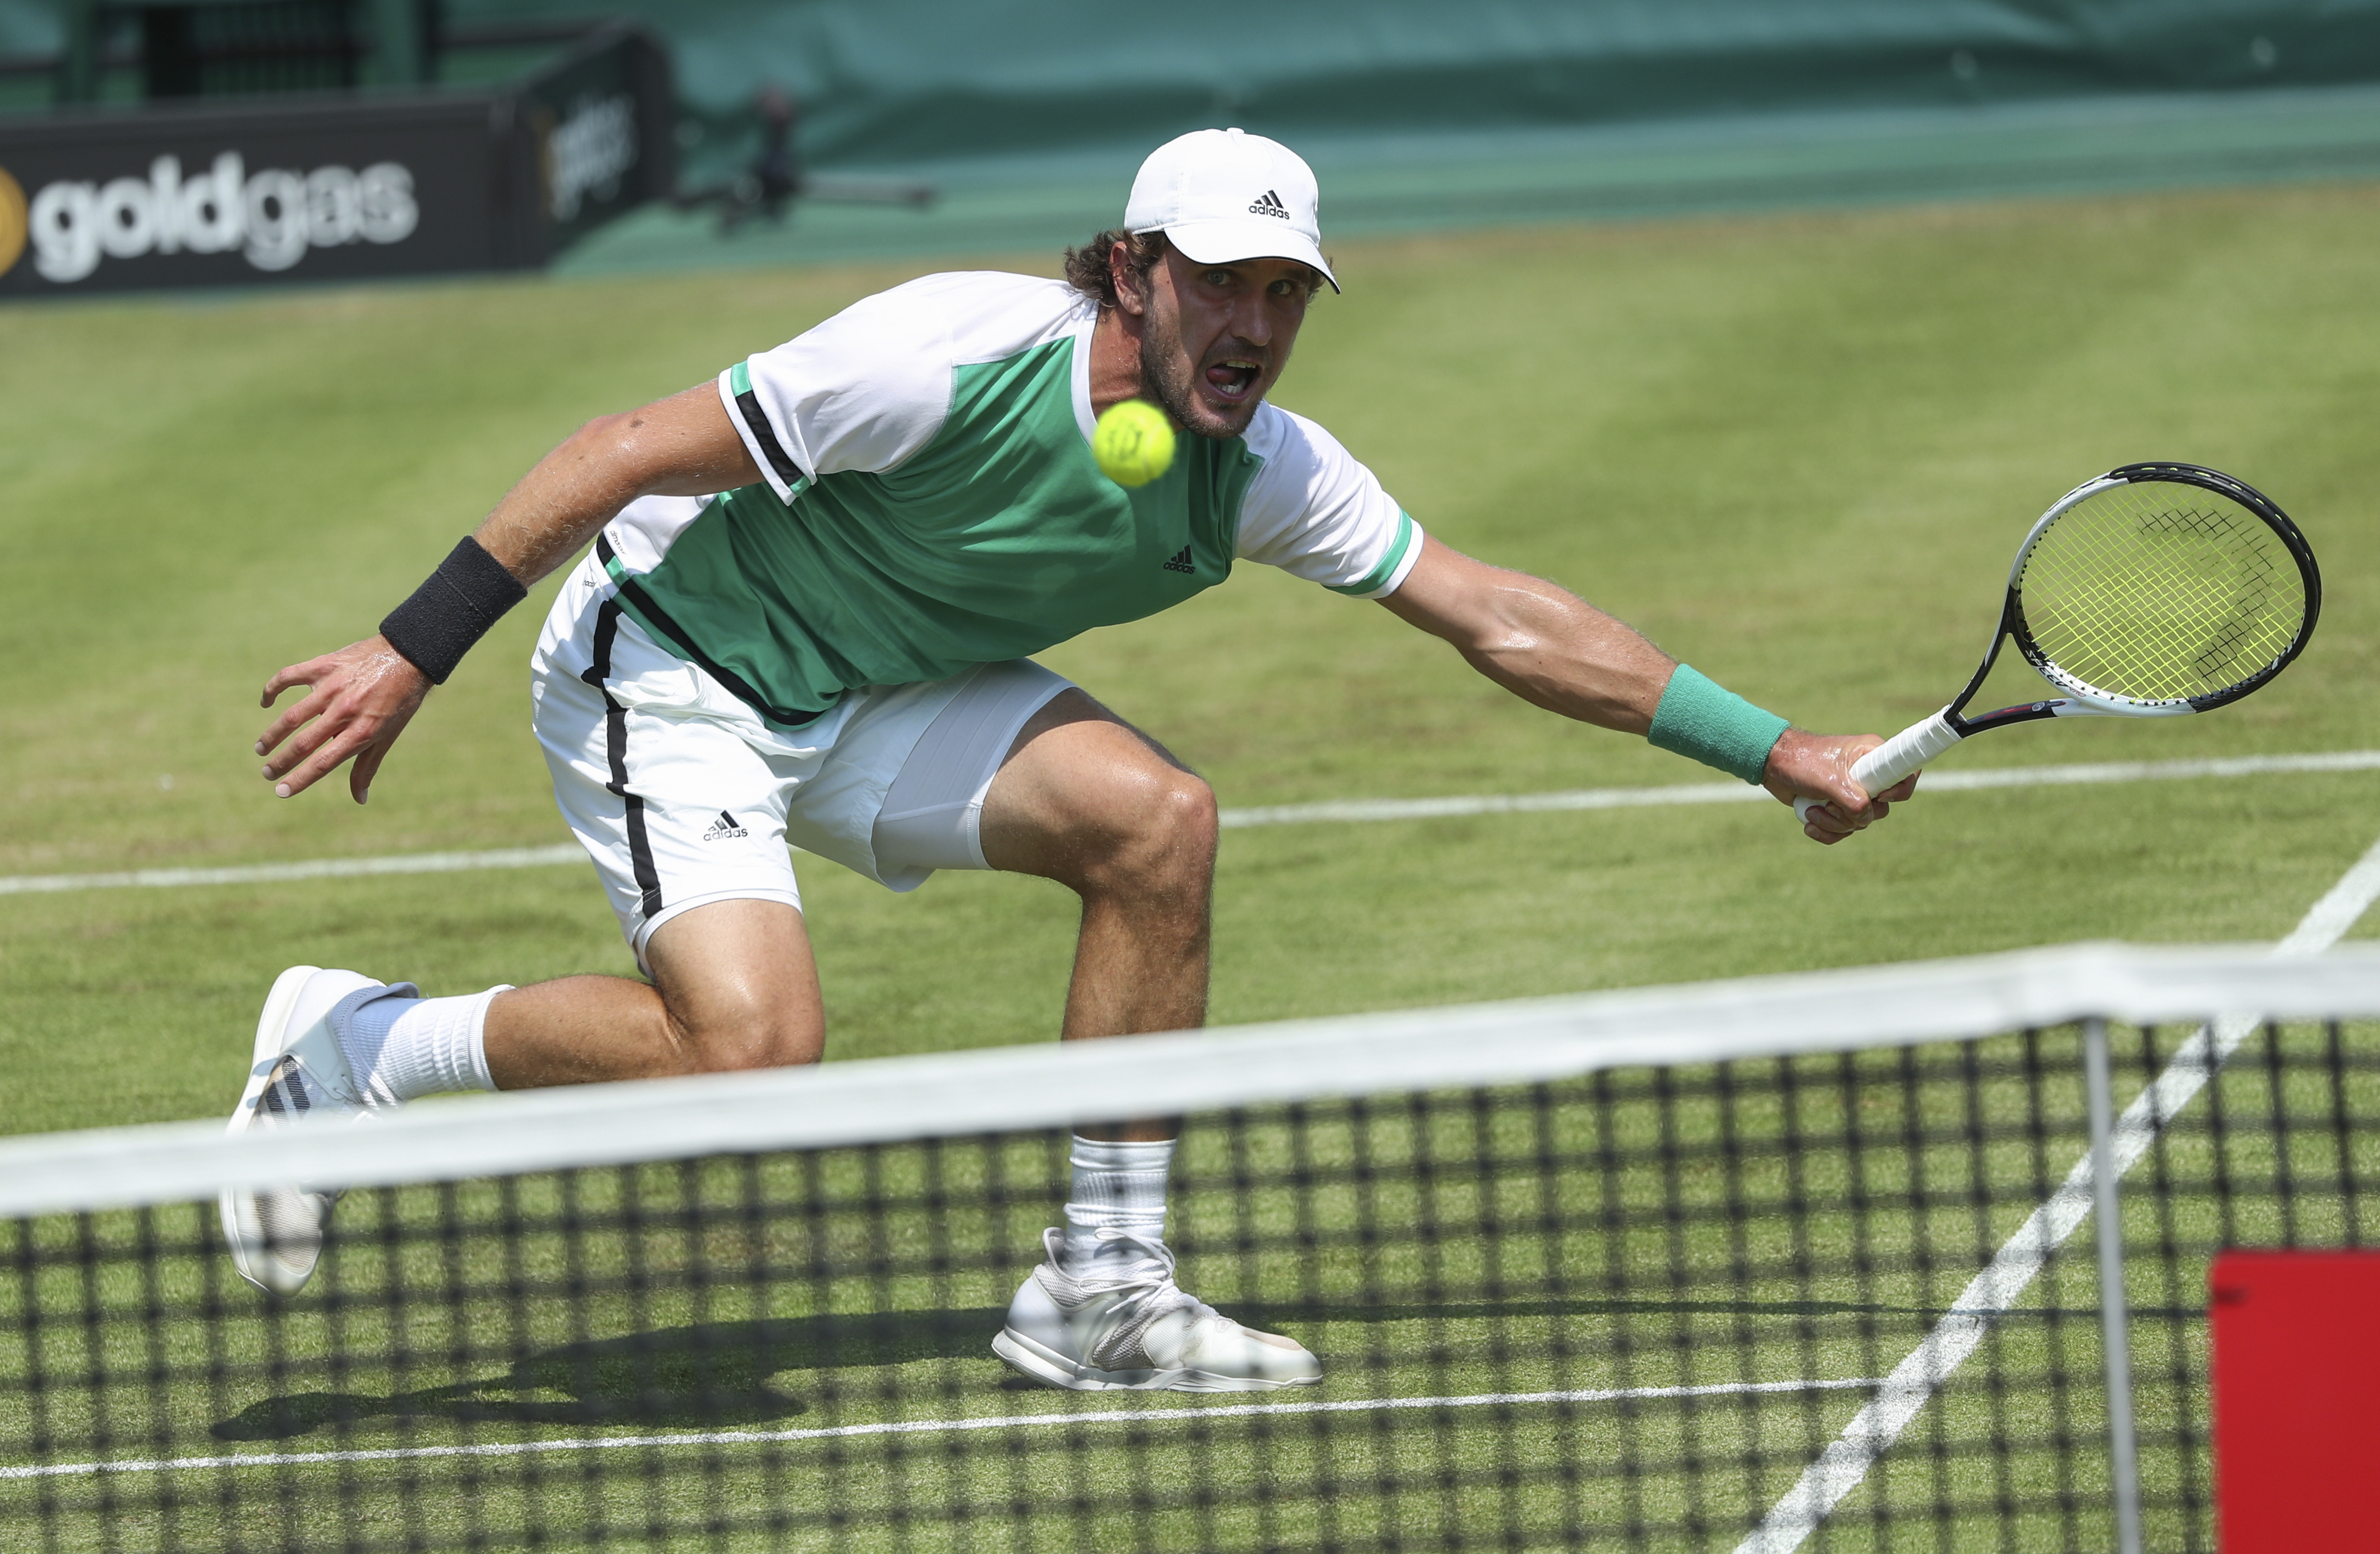 Germany's Mischa Zverev  returns a shot to Slovakia's  Lukas Lacko at the Gerry Weber Open ATP tennis tournament in Halle, Germany, Tuesday, June 20, 2017.  (Friso Gentsch/dpa via AP)